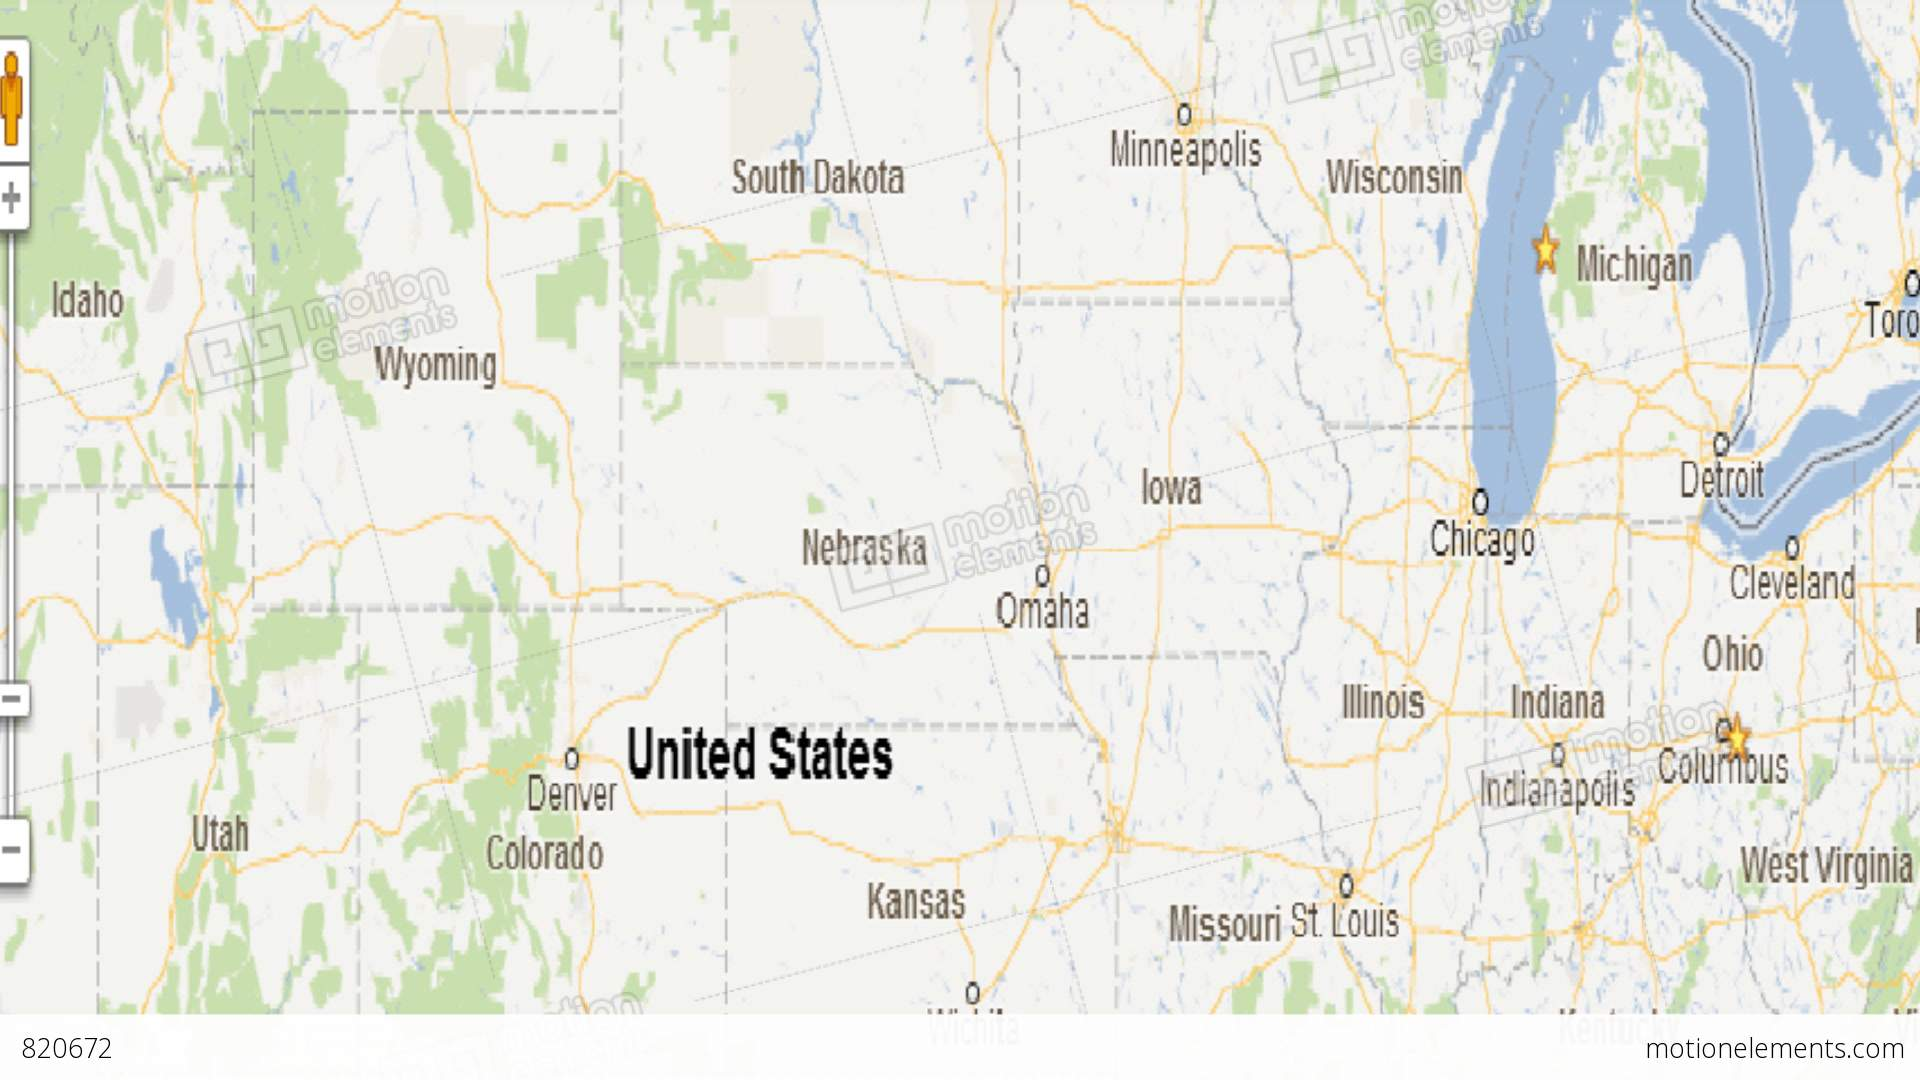 Us map travel animation with car icon stock animation 820672 us map travel animation with car icon stock video footage gumiabroncs Choice Image